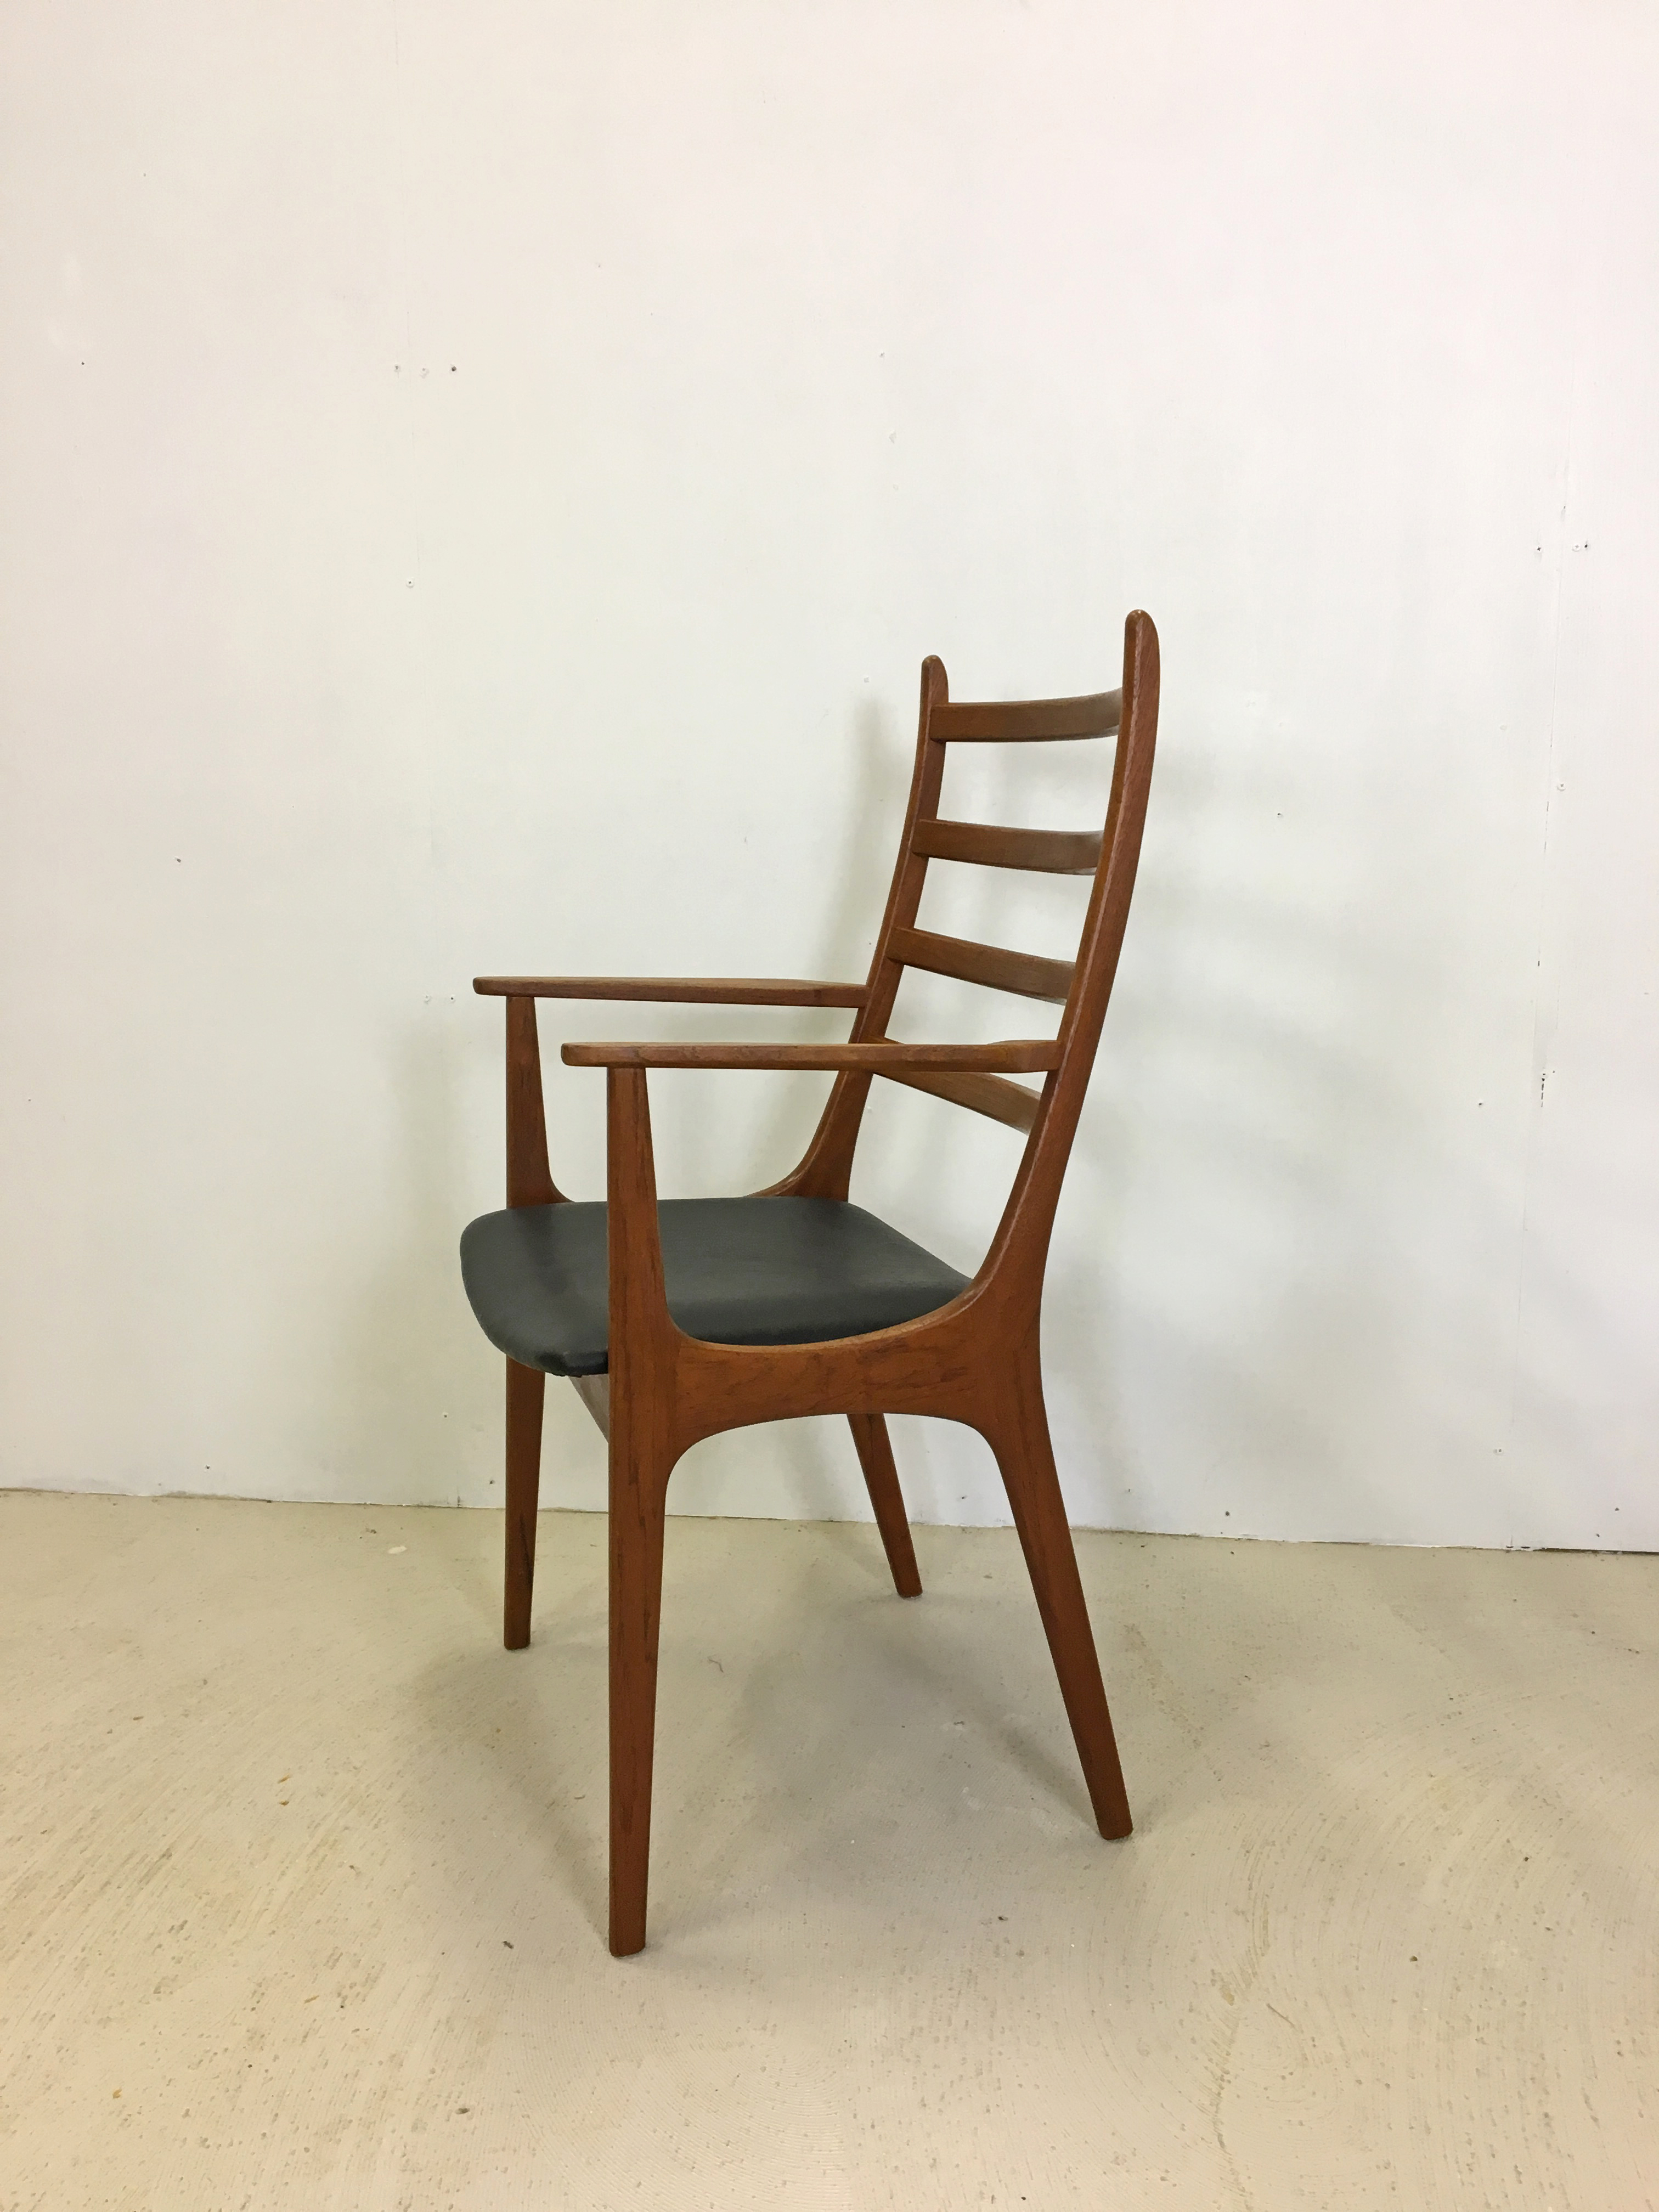 Danish Modern Teak Dining Chairs by Kai Kristiansen